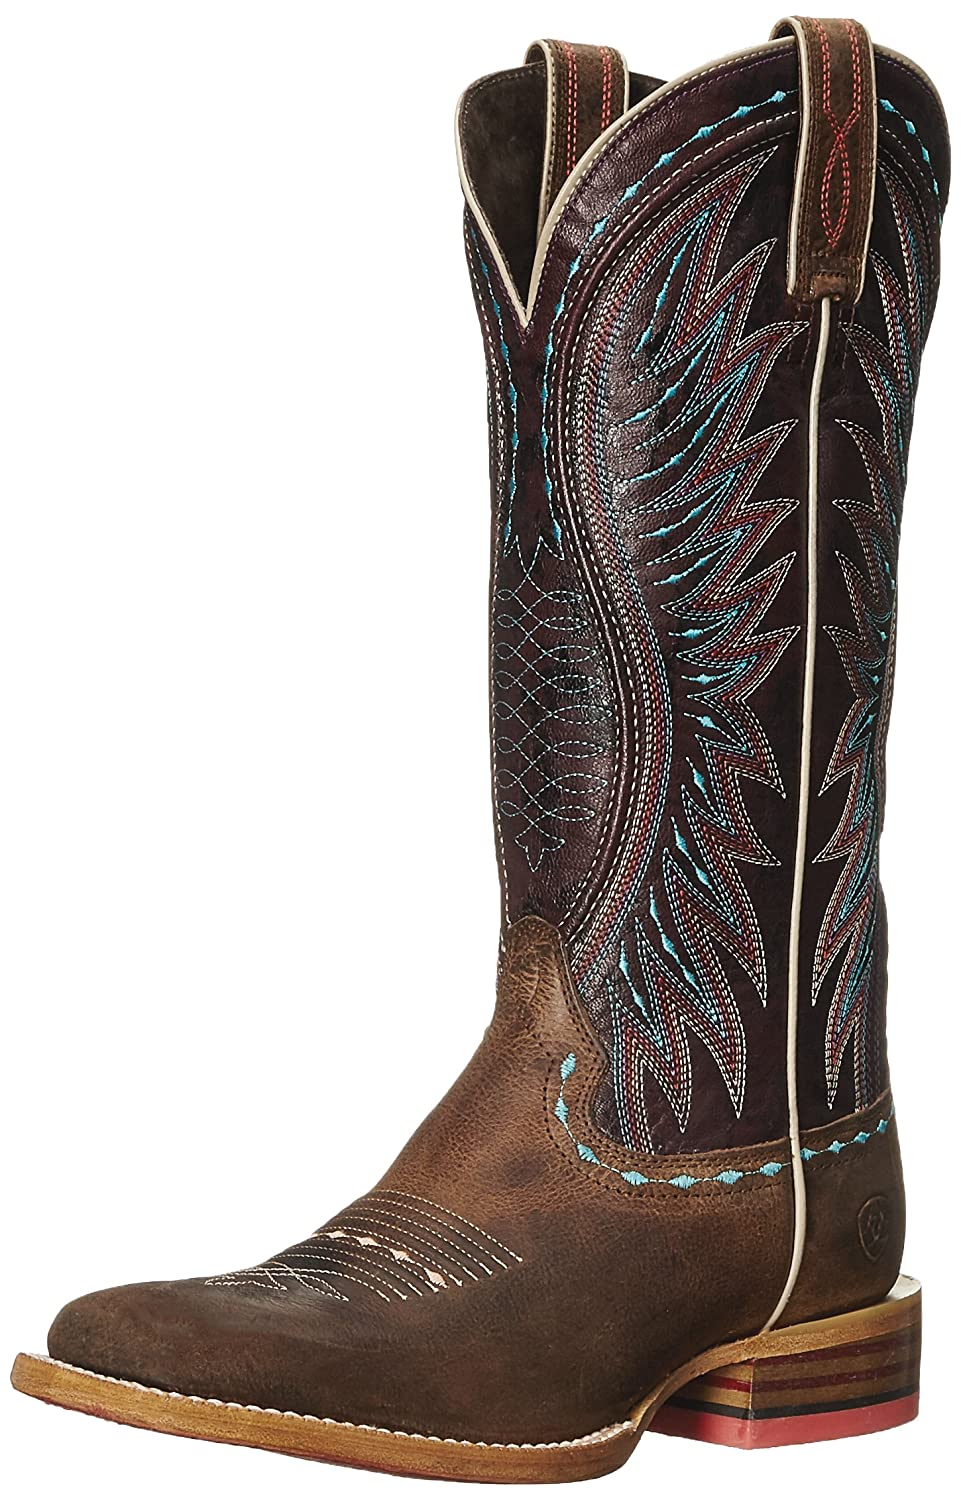 Ariat Women's Vaquera Western Cowboy Boot B013J00N2C 6.5 B(M) US|Khaki/ Sunset Purple